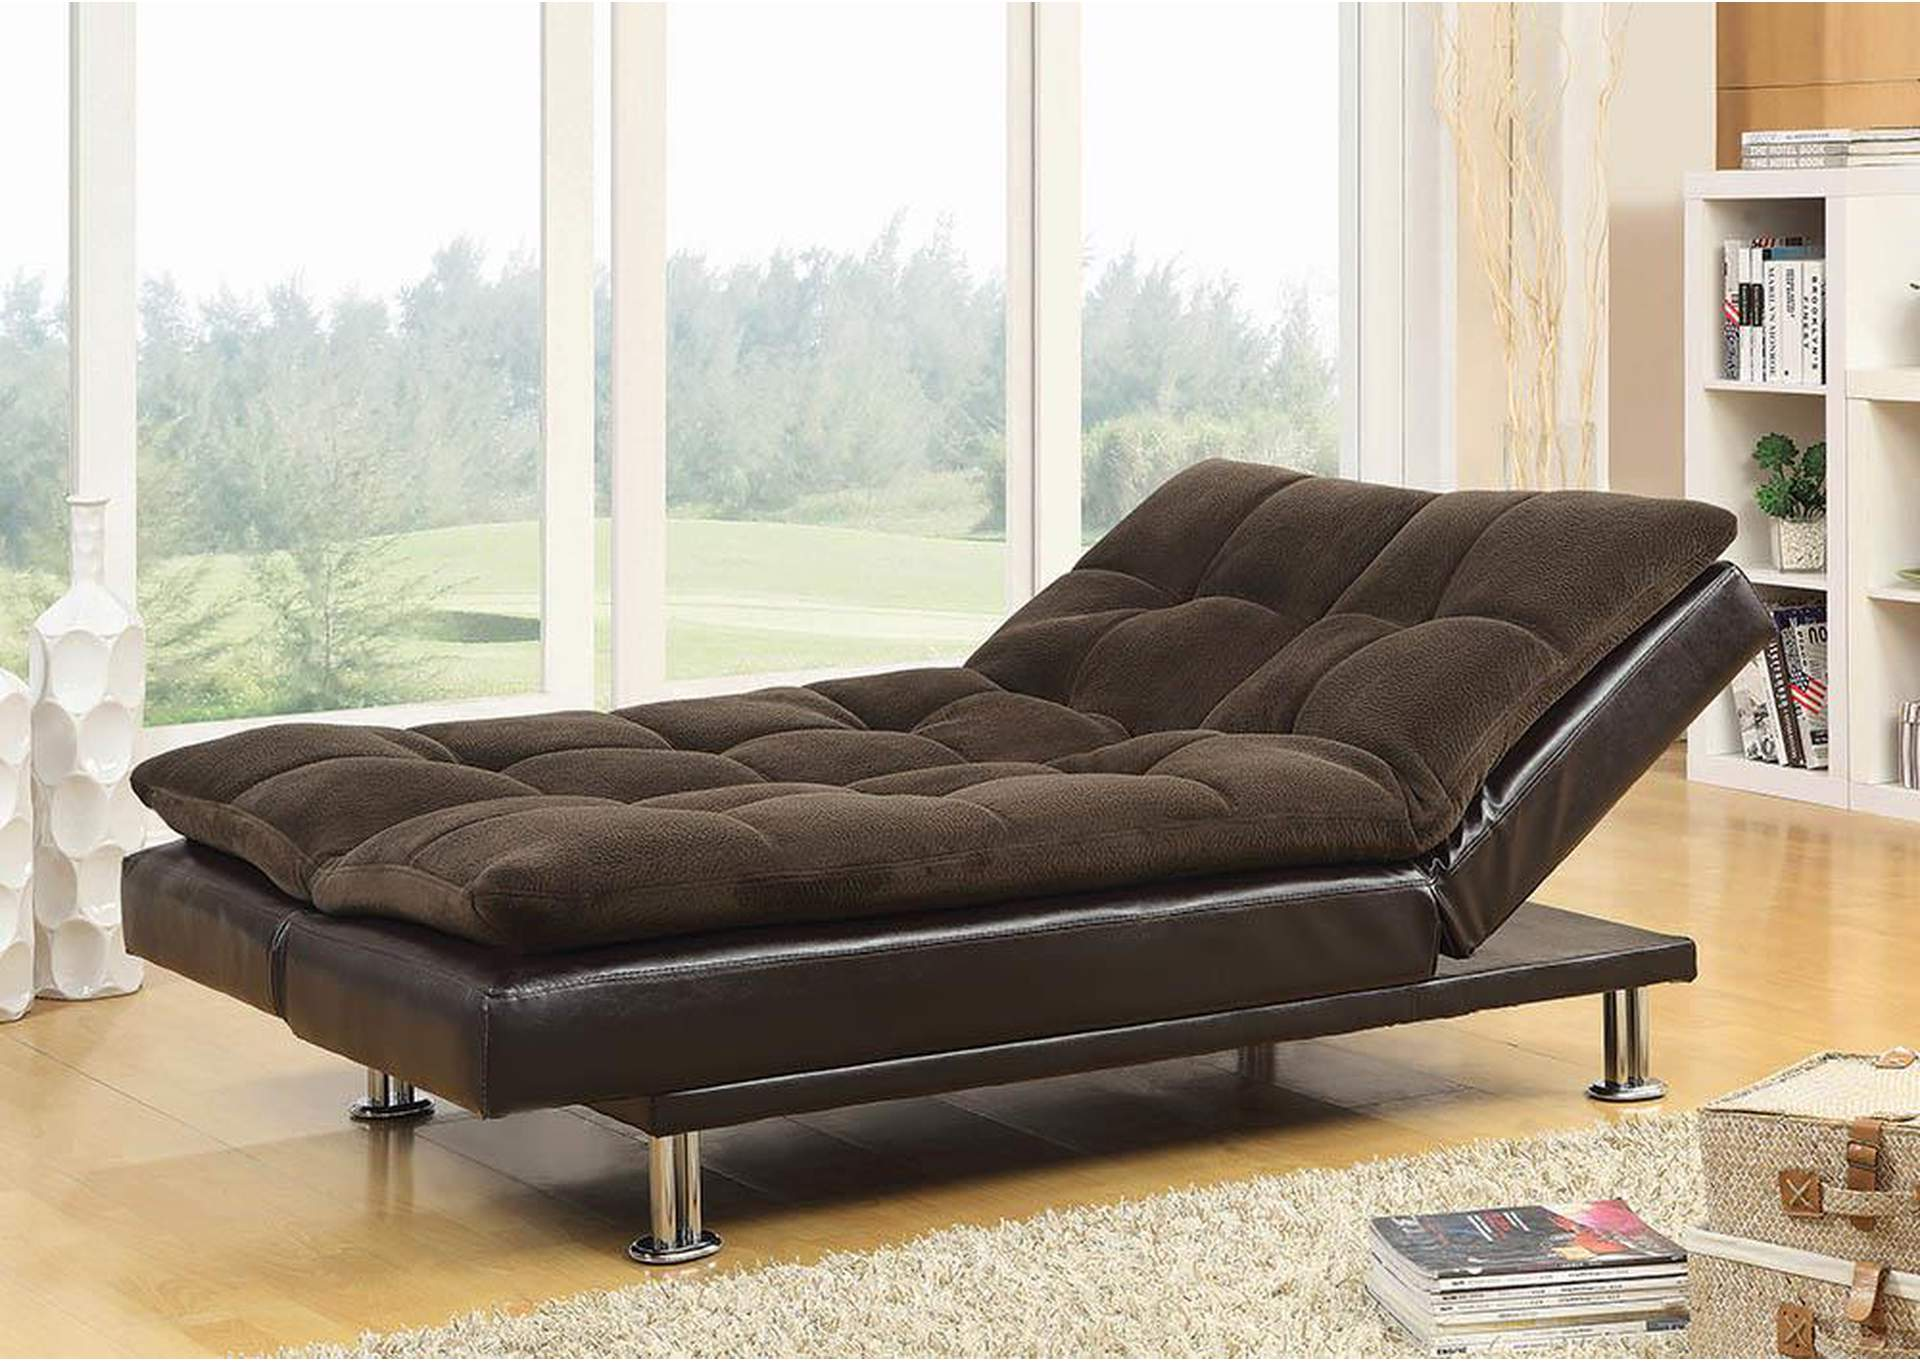 Superb Parkview Furniture Overstuffed Brown Chrome Sofa Bed Machost Co Dining Chair Design Ideas Machostcouk